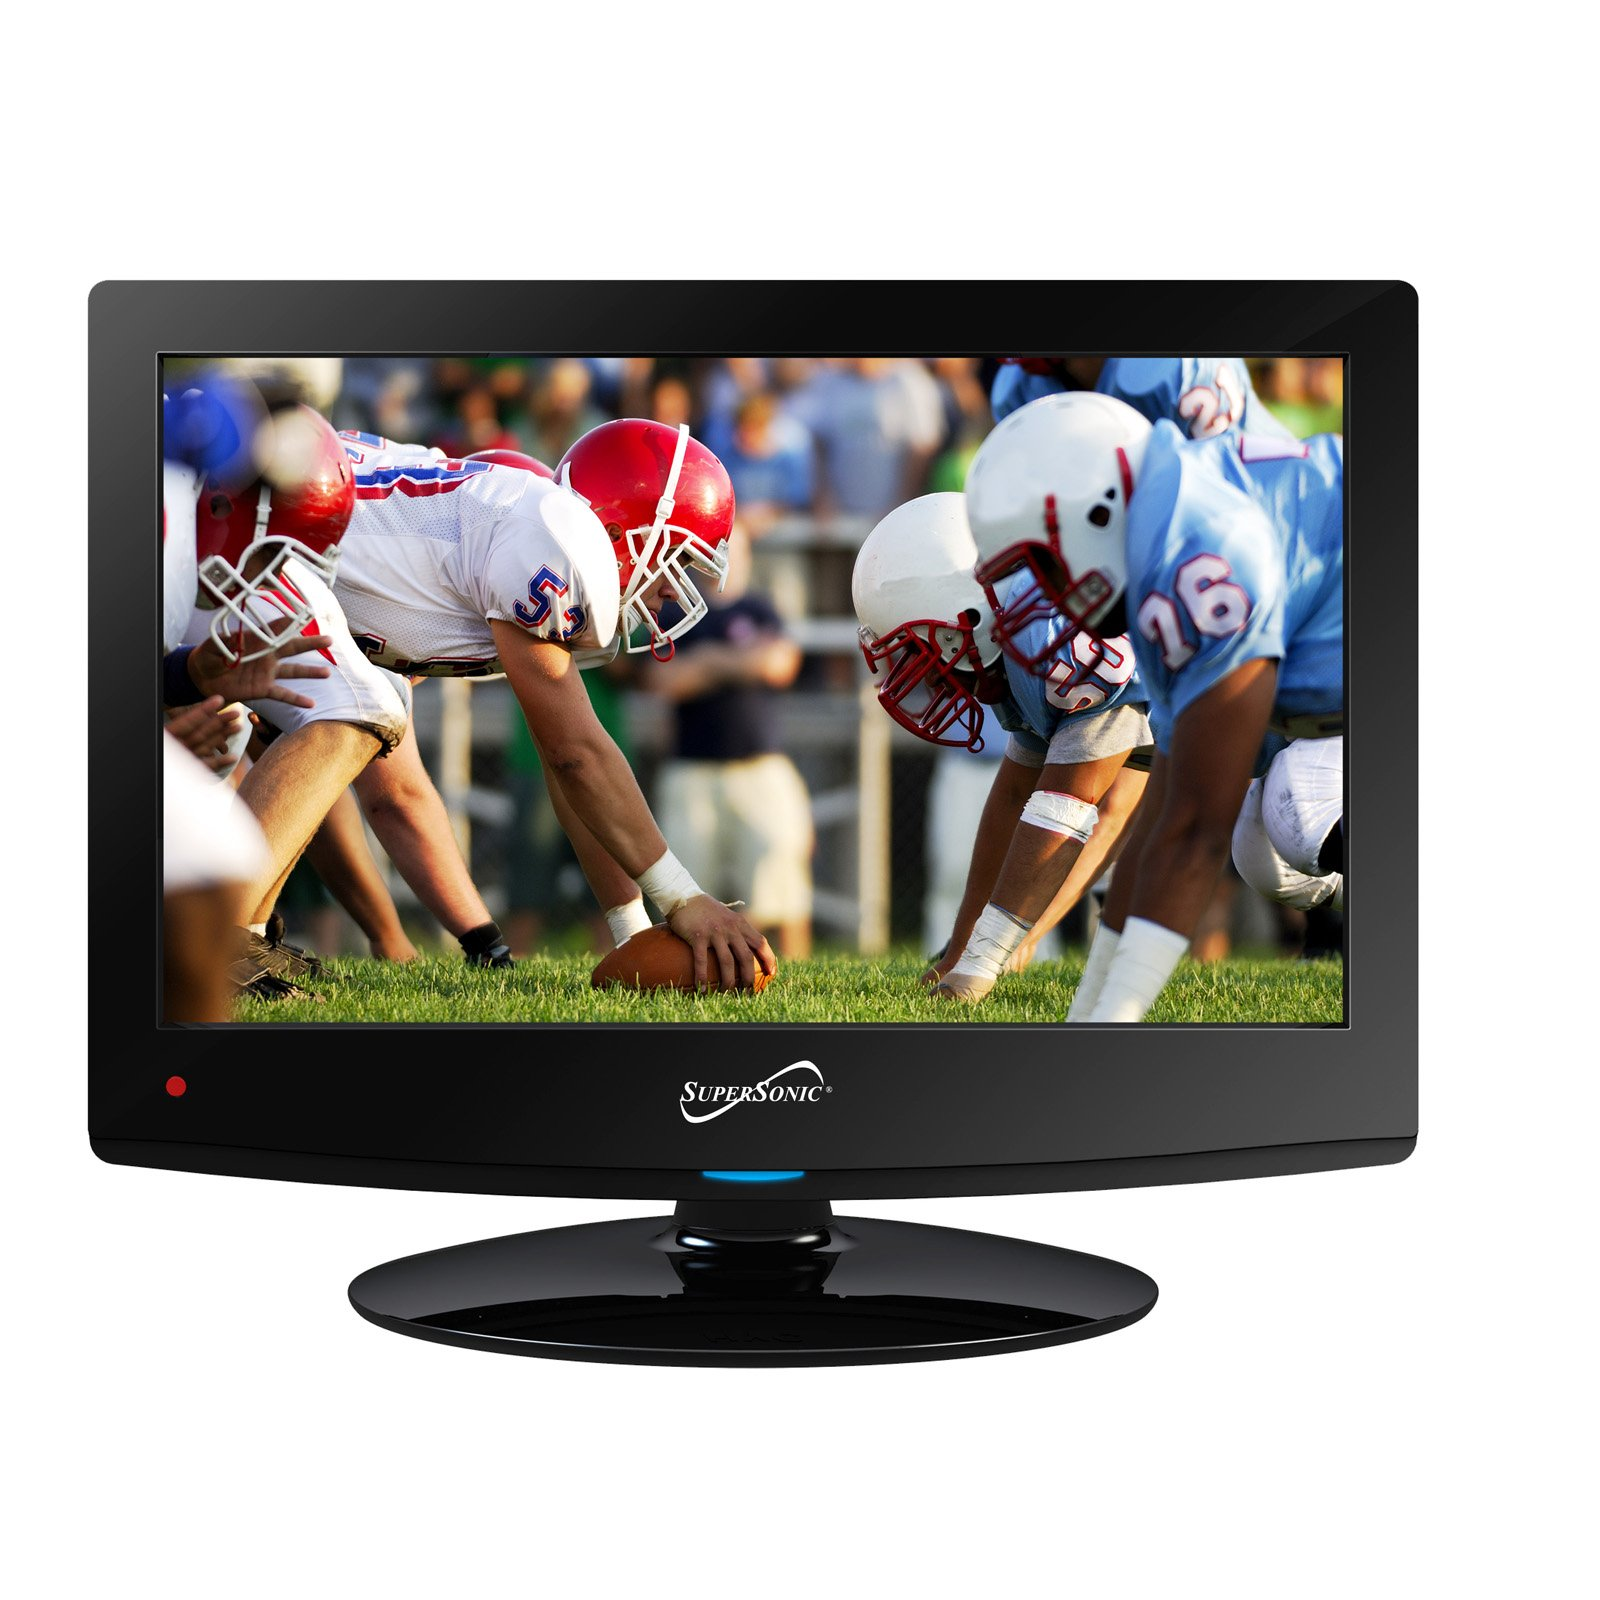 Supersonic 15 Class LED HDTV with USB and HDMI Input